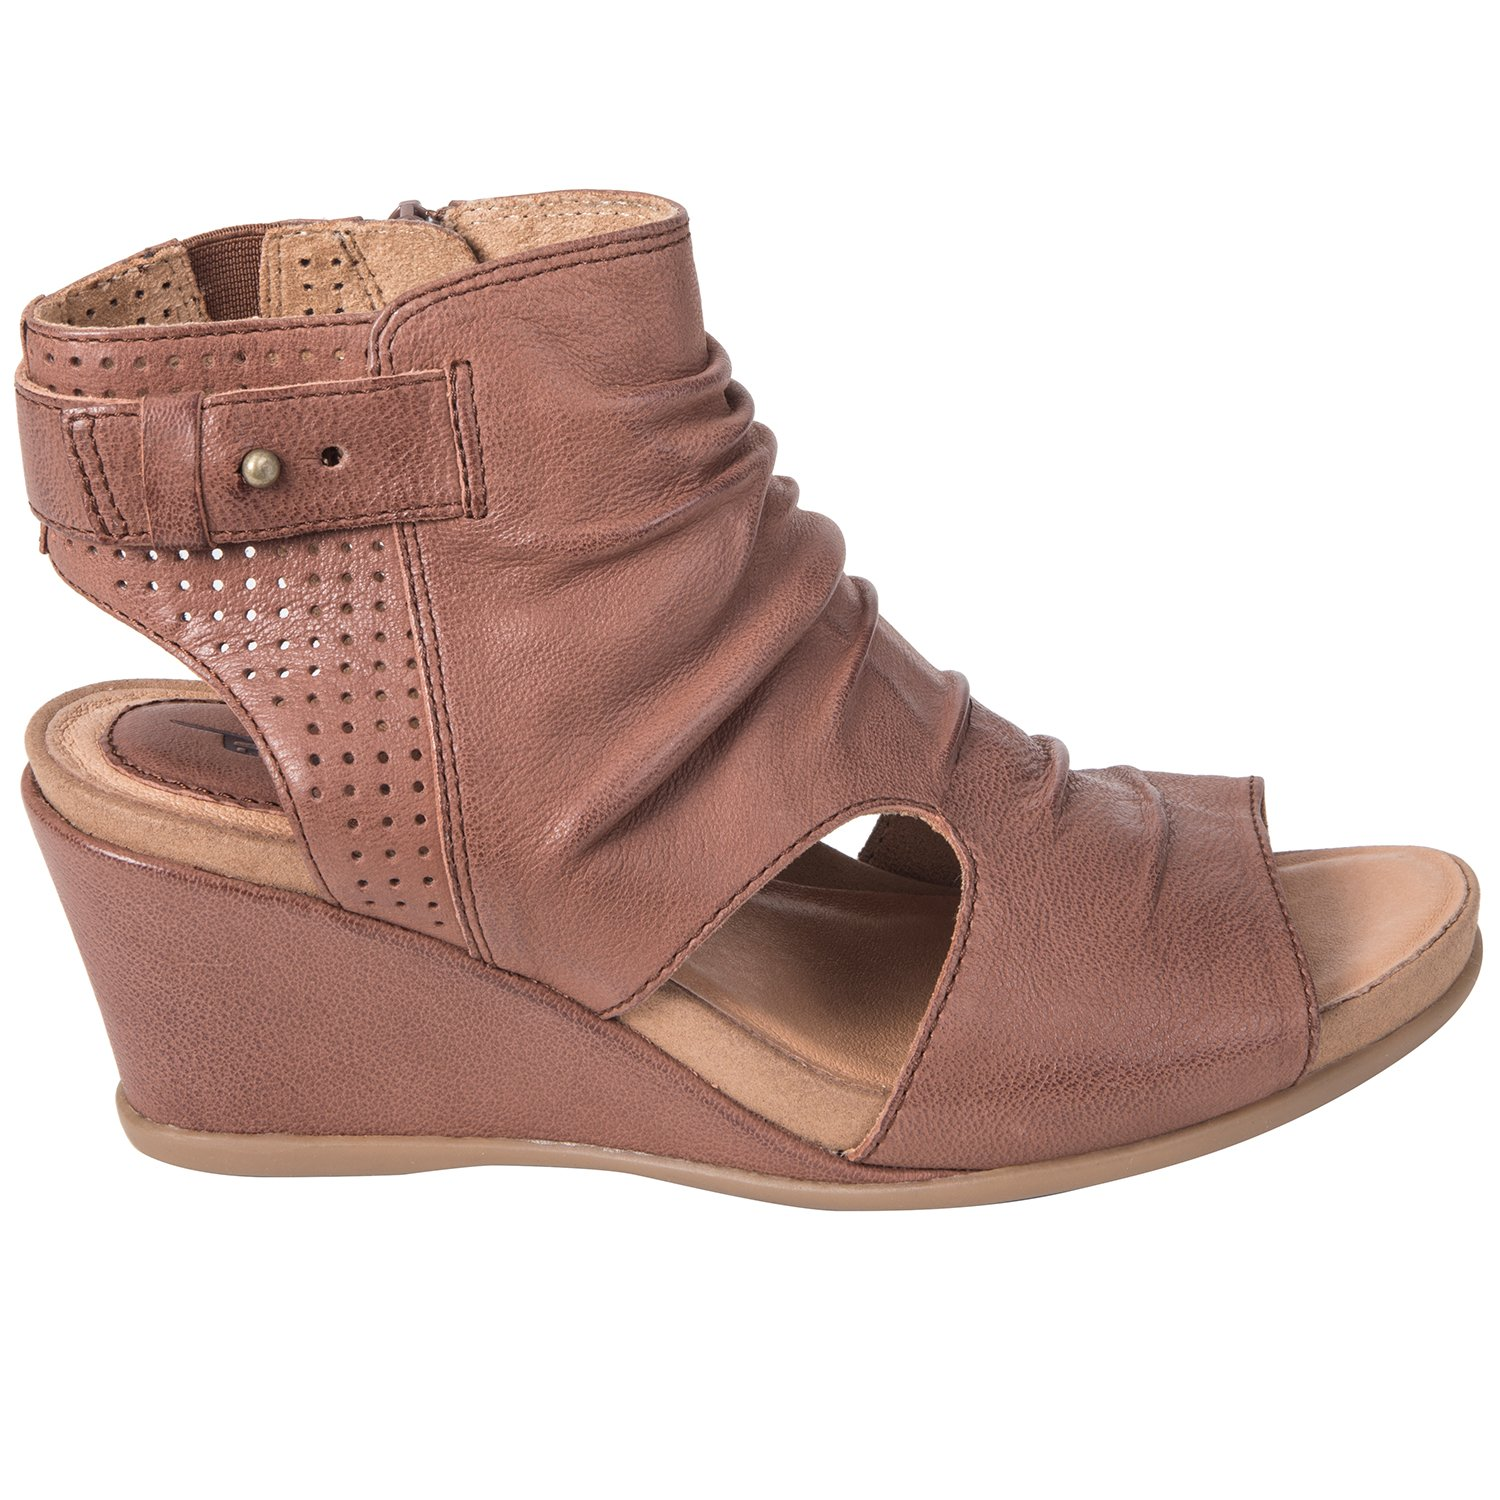 b2282bcbe97 Kalso Earth Shoes Womens Sweetpea Leather Open Toe Casual Ankle